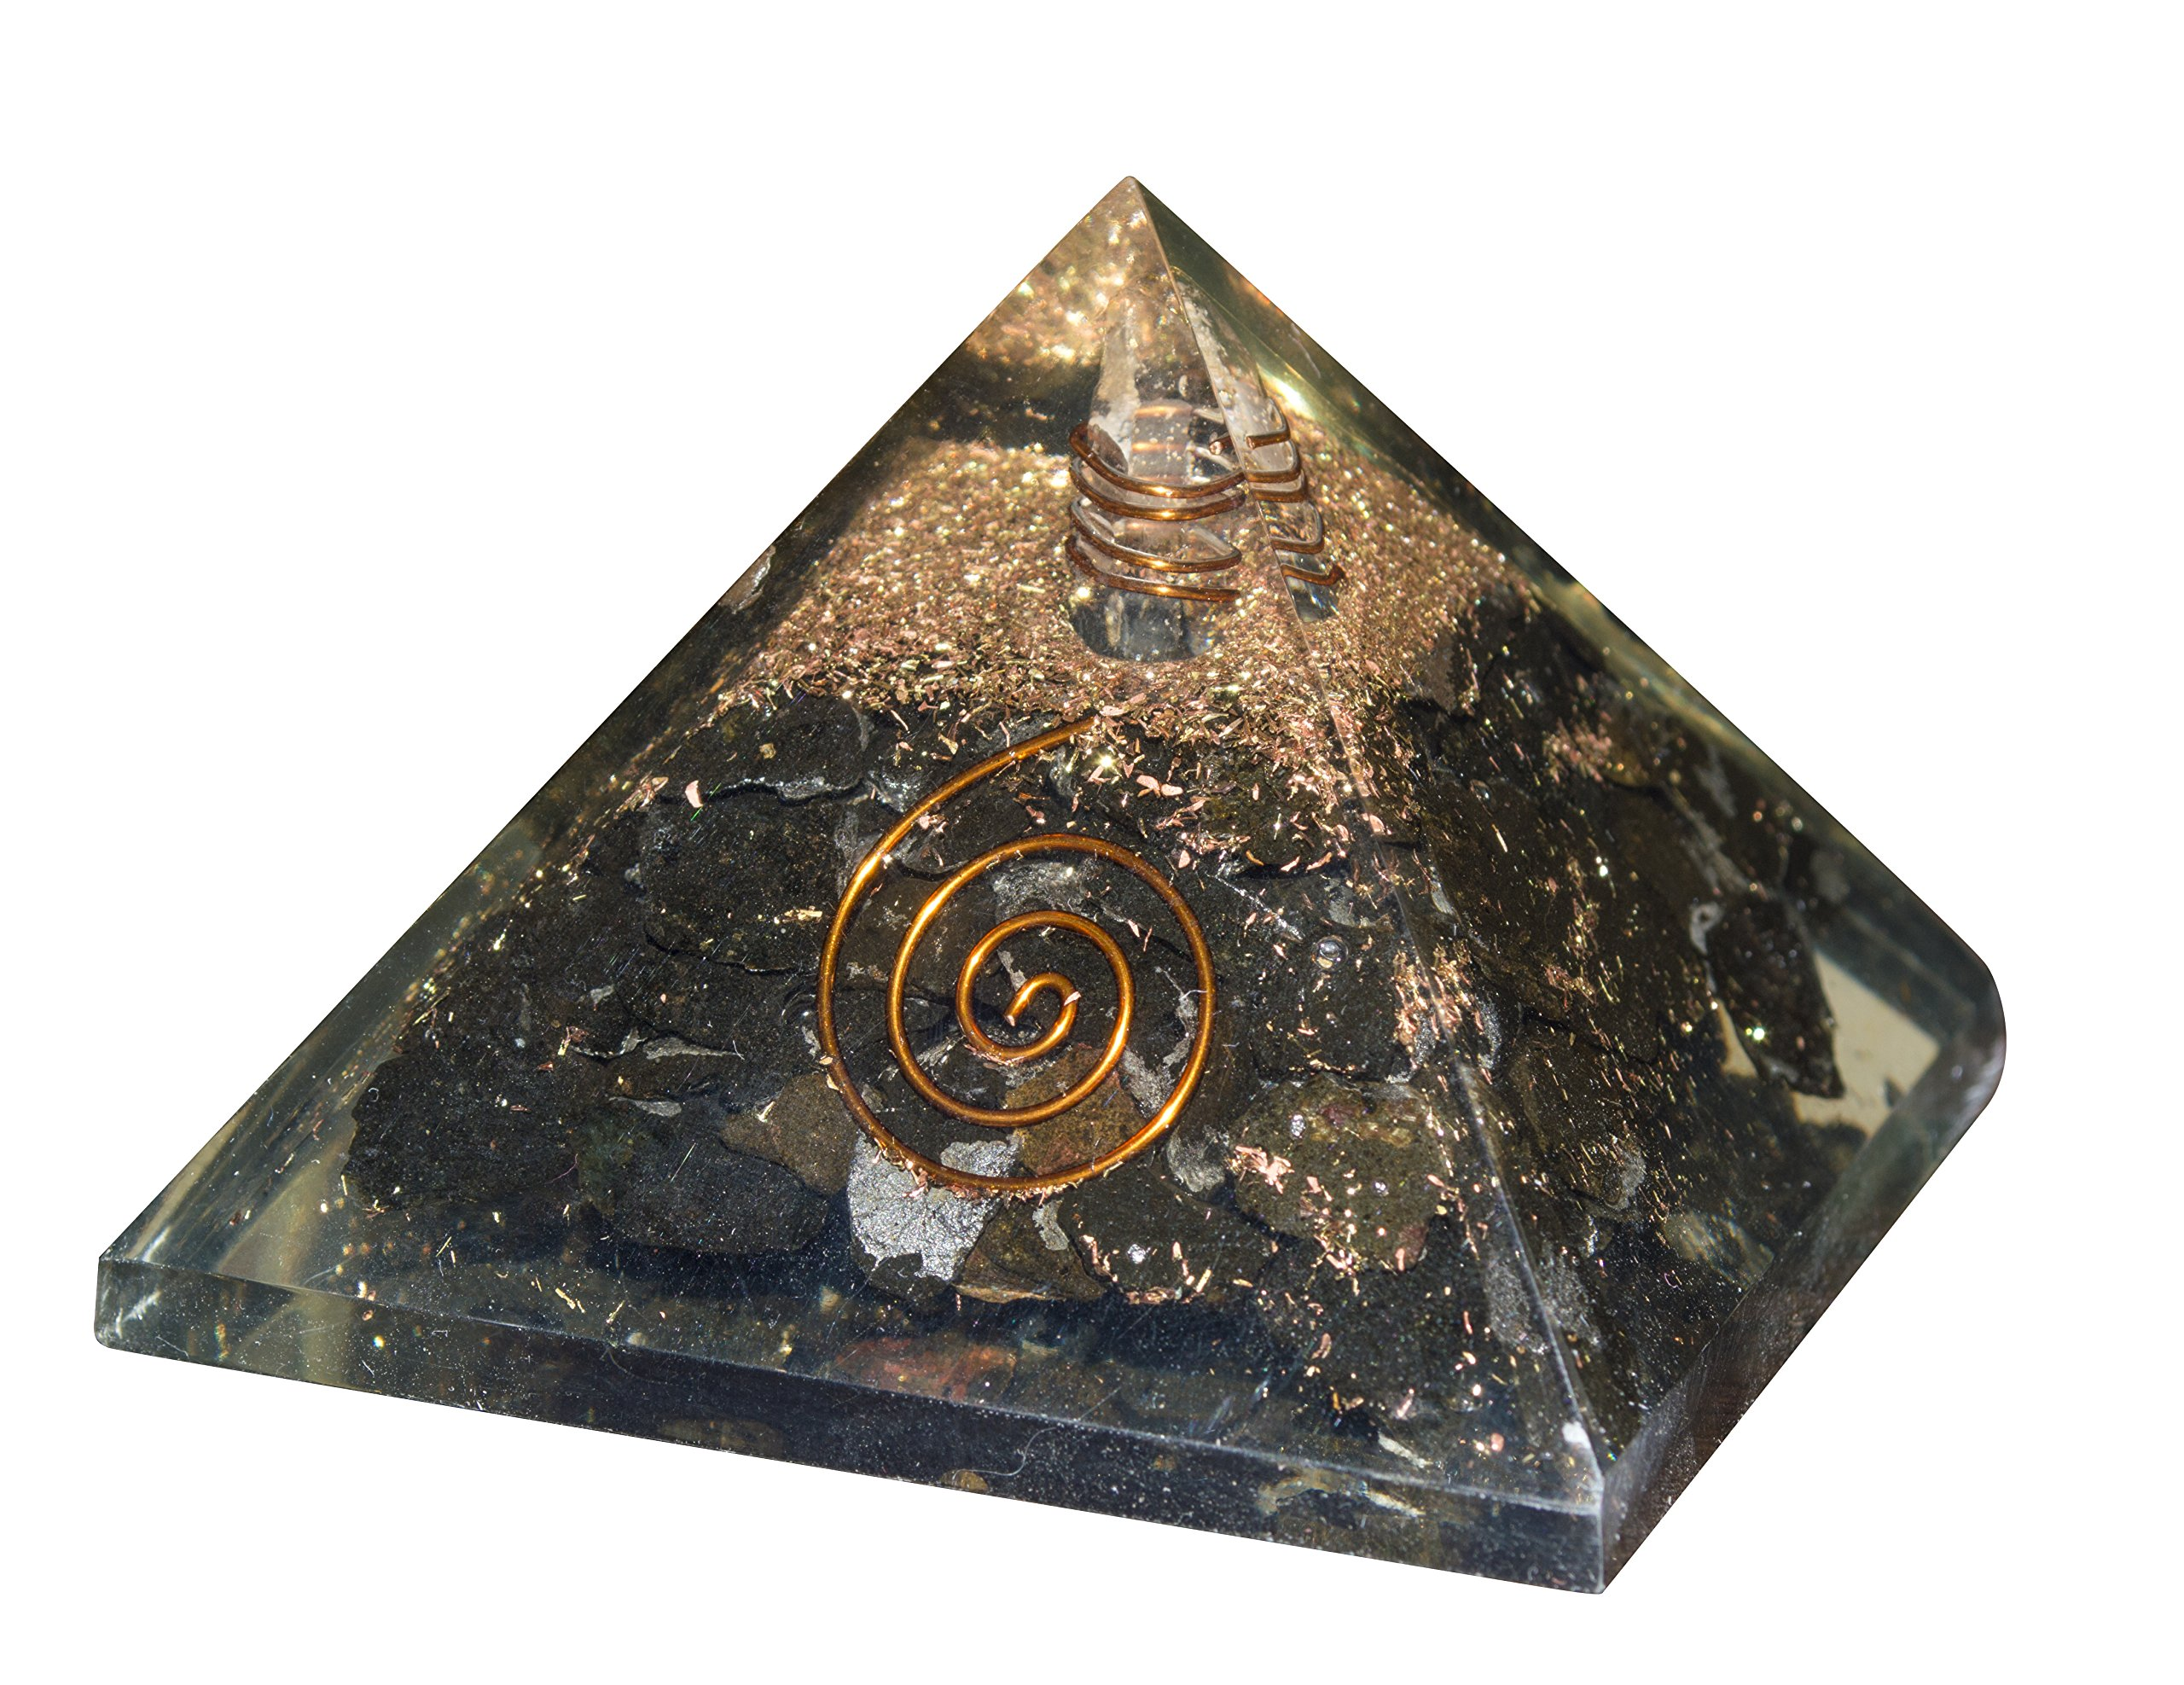 Crocon Black Tourmaline Reiki Healing Orgone Pyramid With Crystal Point Energy Generator For Chakra Balancing Aura Cleansing & EMF Protection Size: 2.5-3 Inch